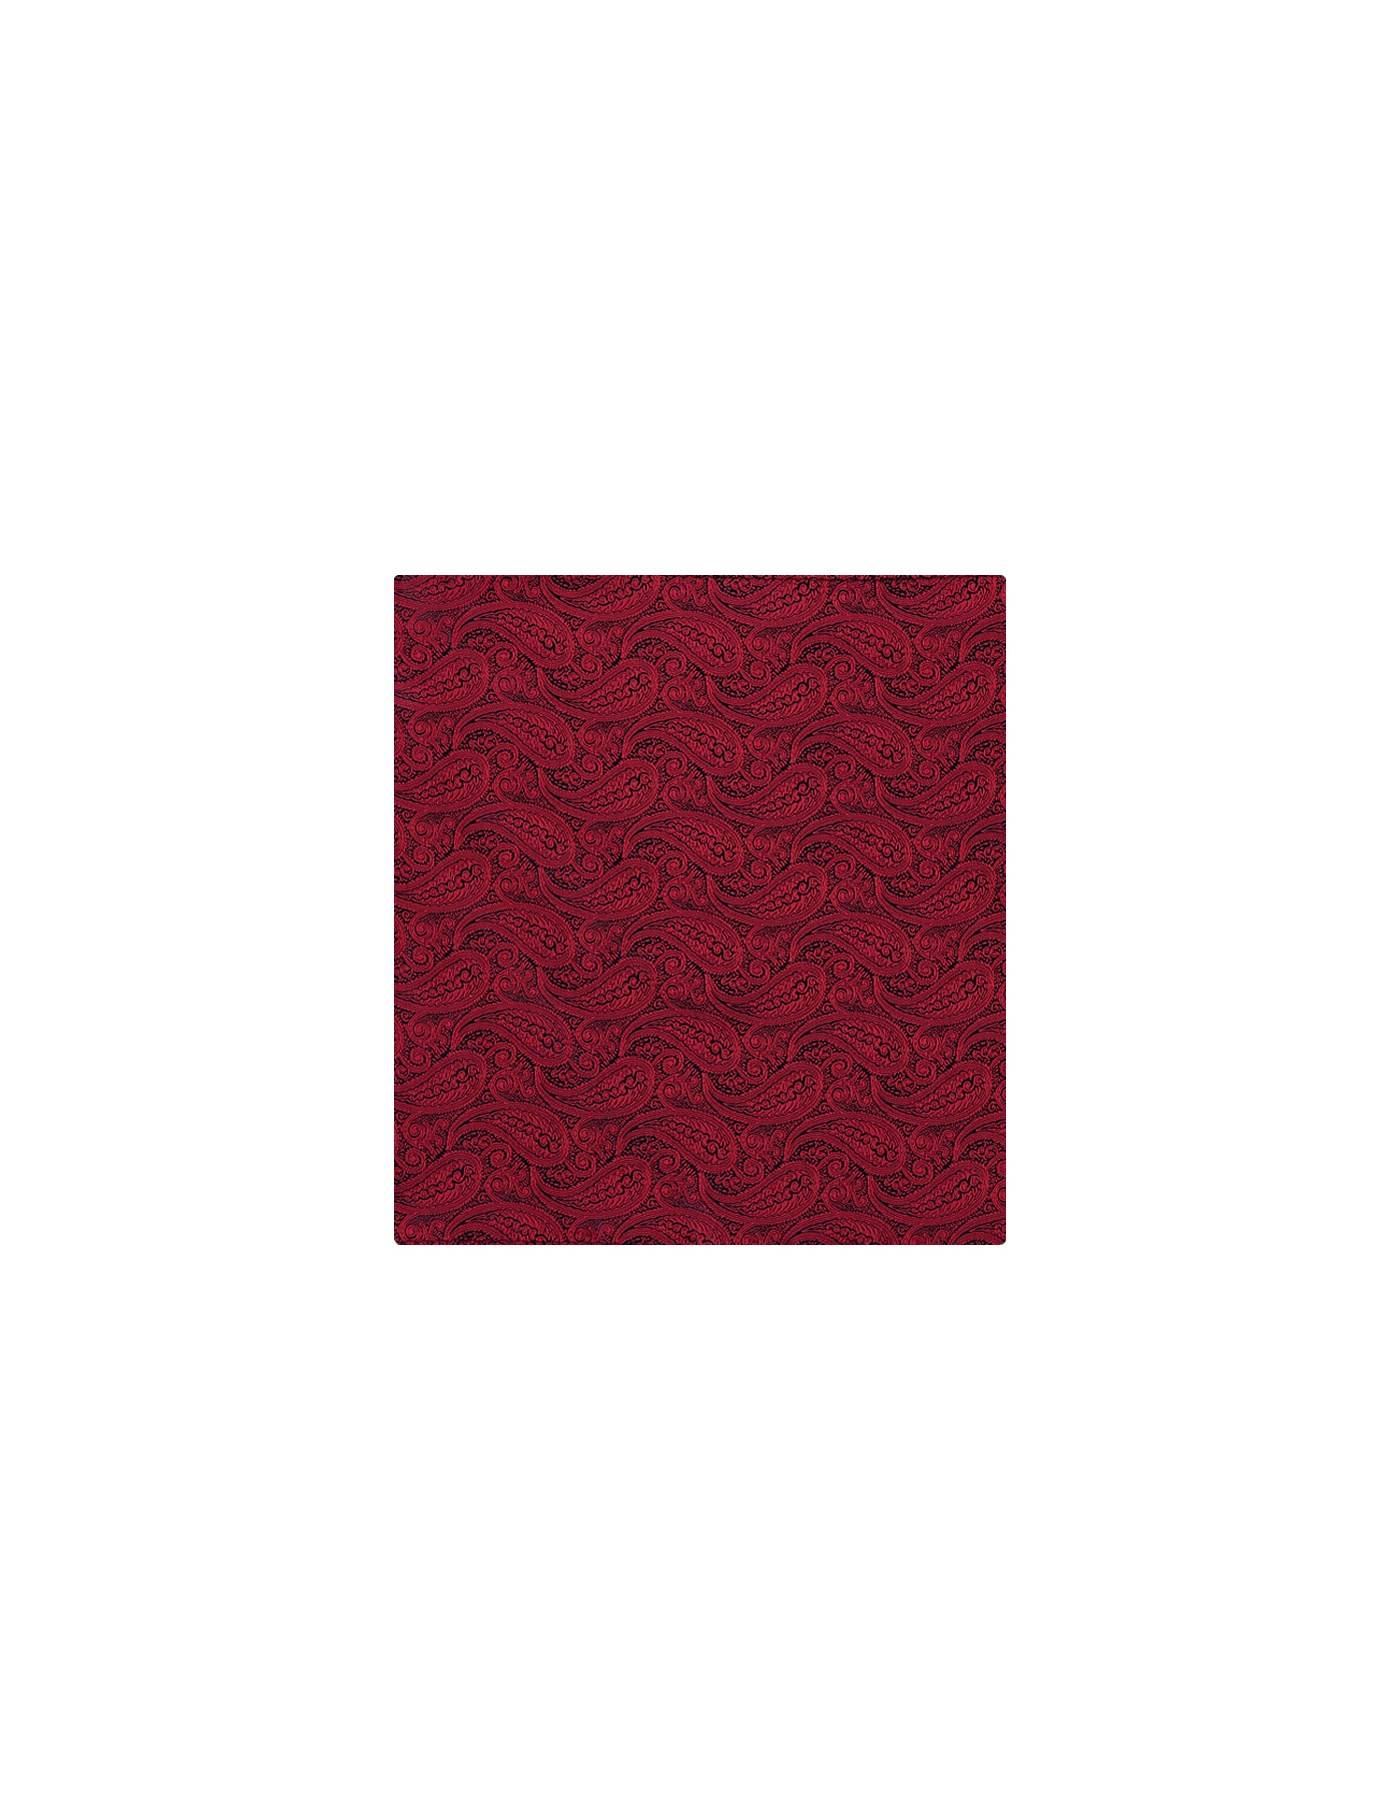 Hawes & Curtis Men's Paisley Pocket Square in Red 100% Silk